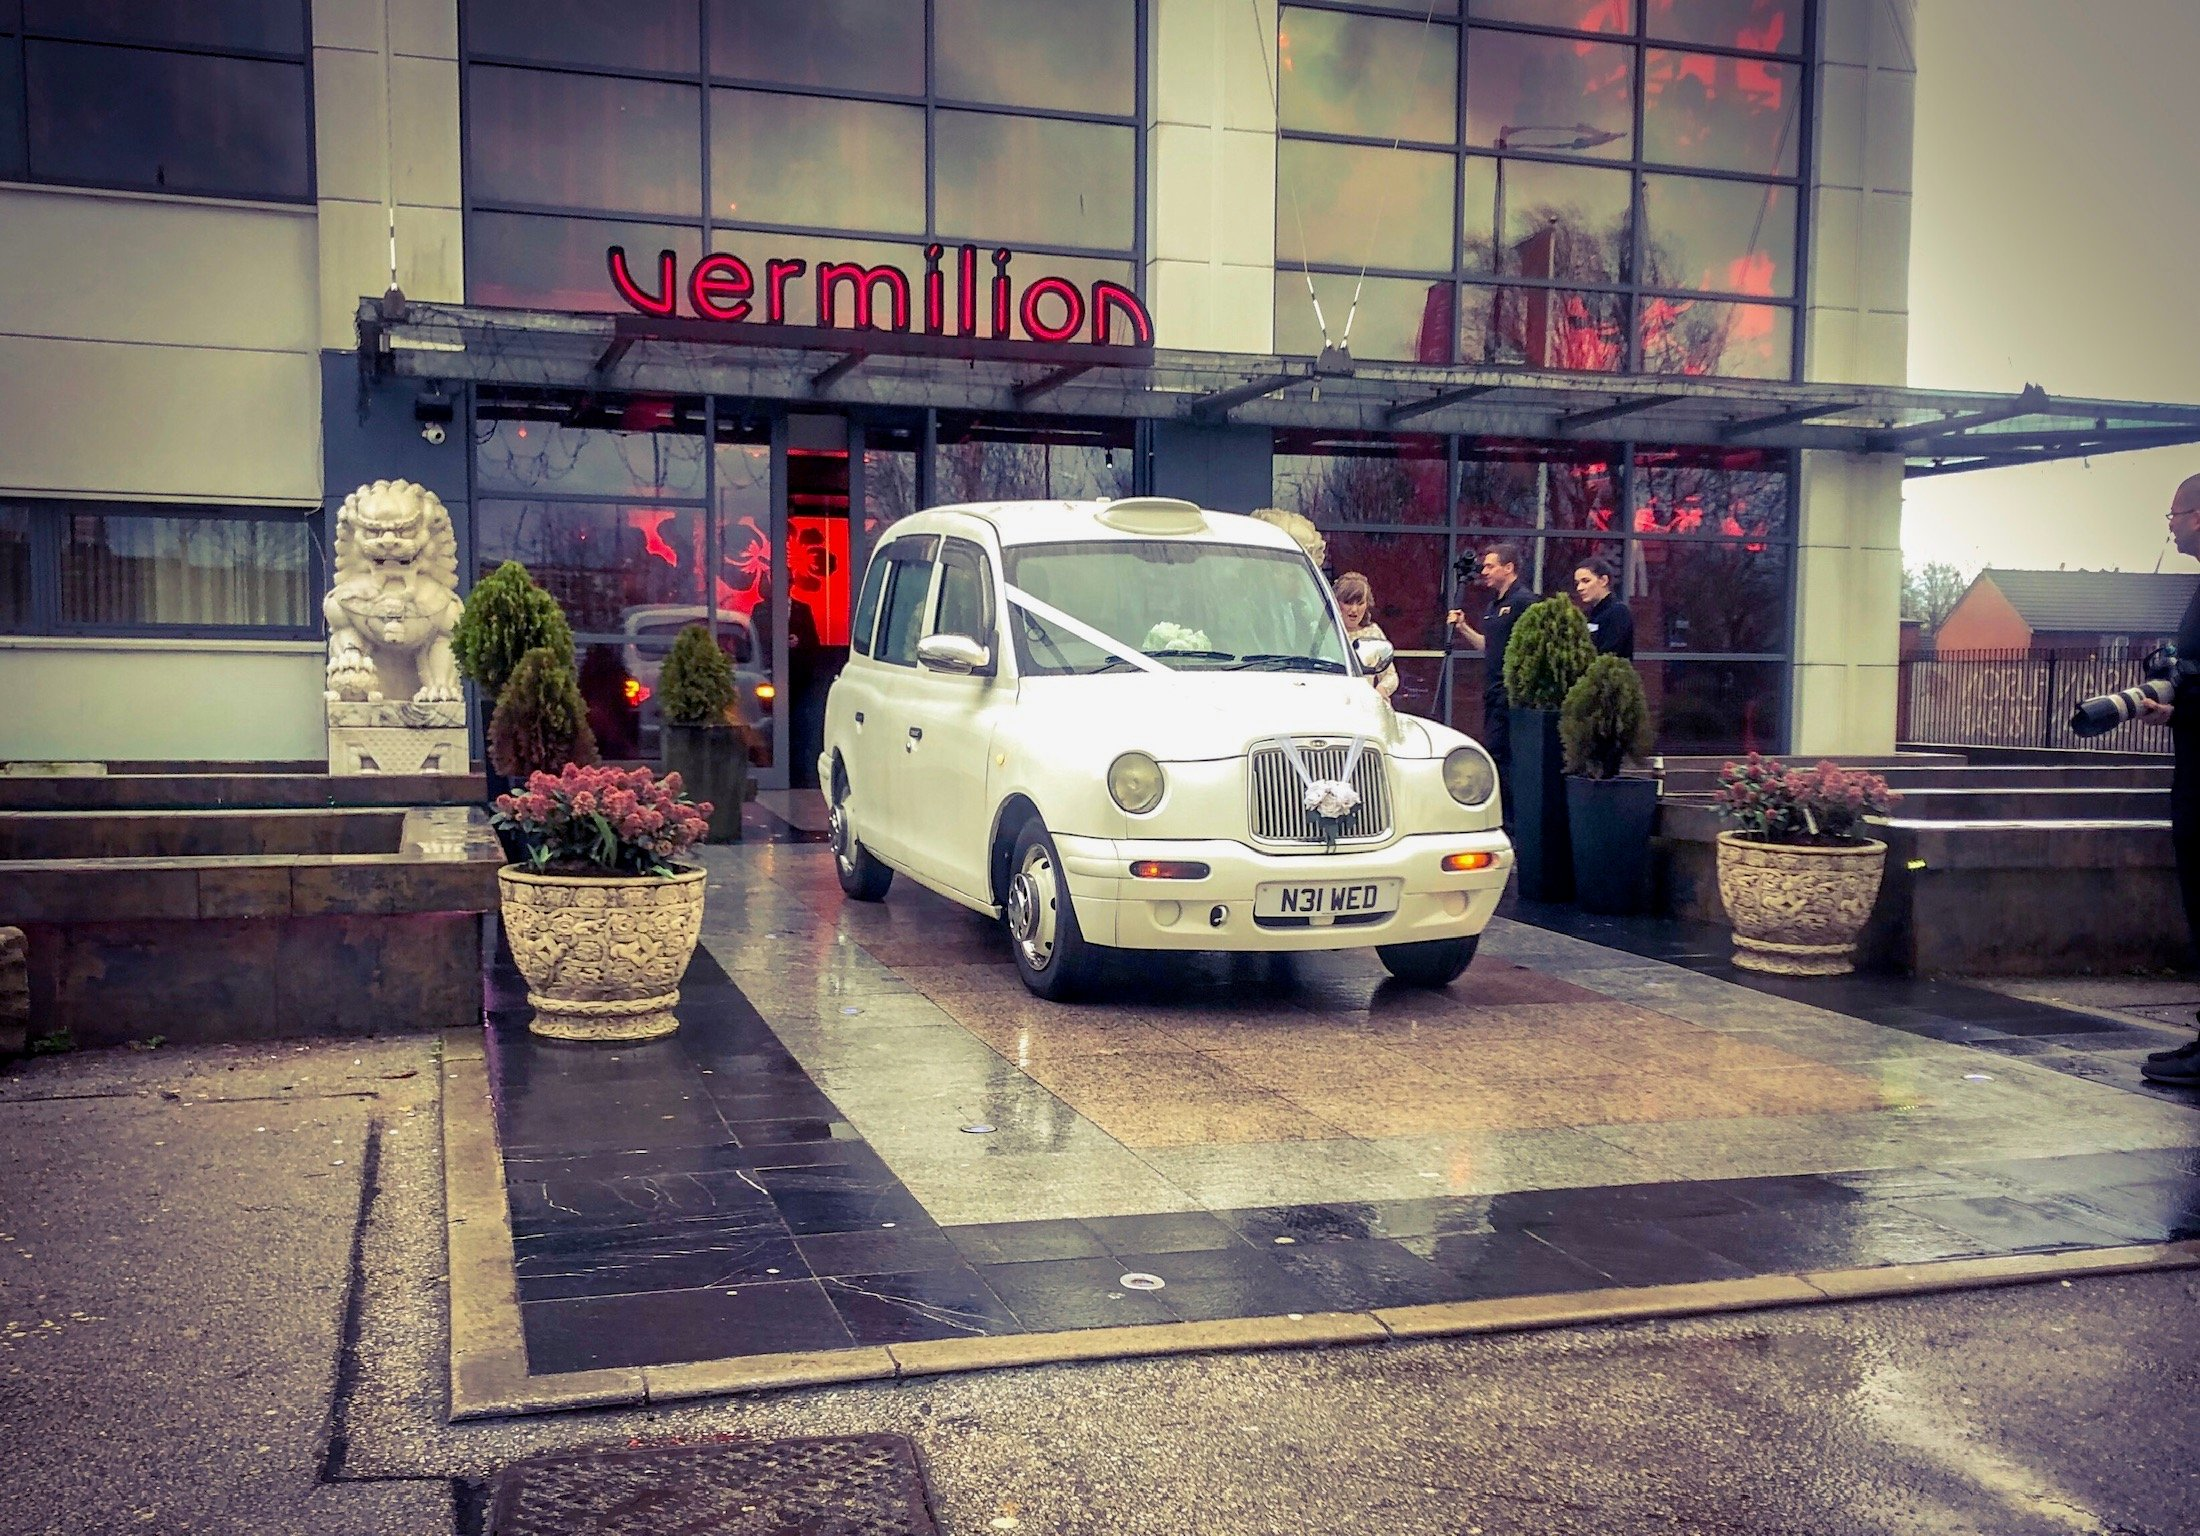 Vermillion wedding taxi cars